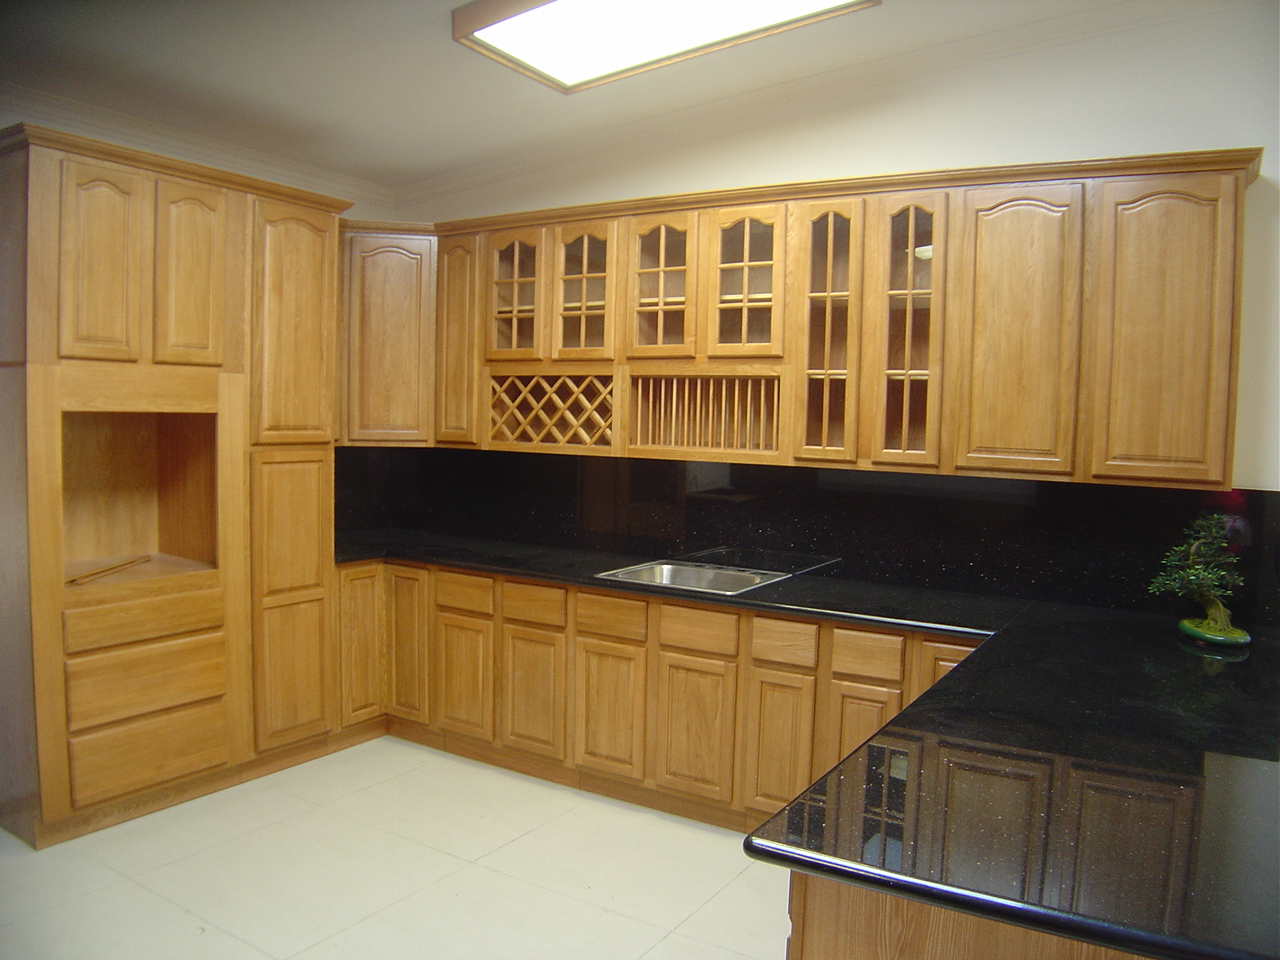 Oak kitchen cabinets for your interior kitchen minimalist for Kitchen design cabinets